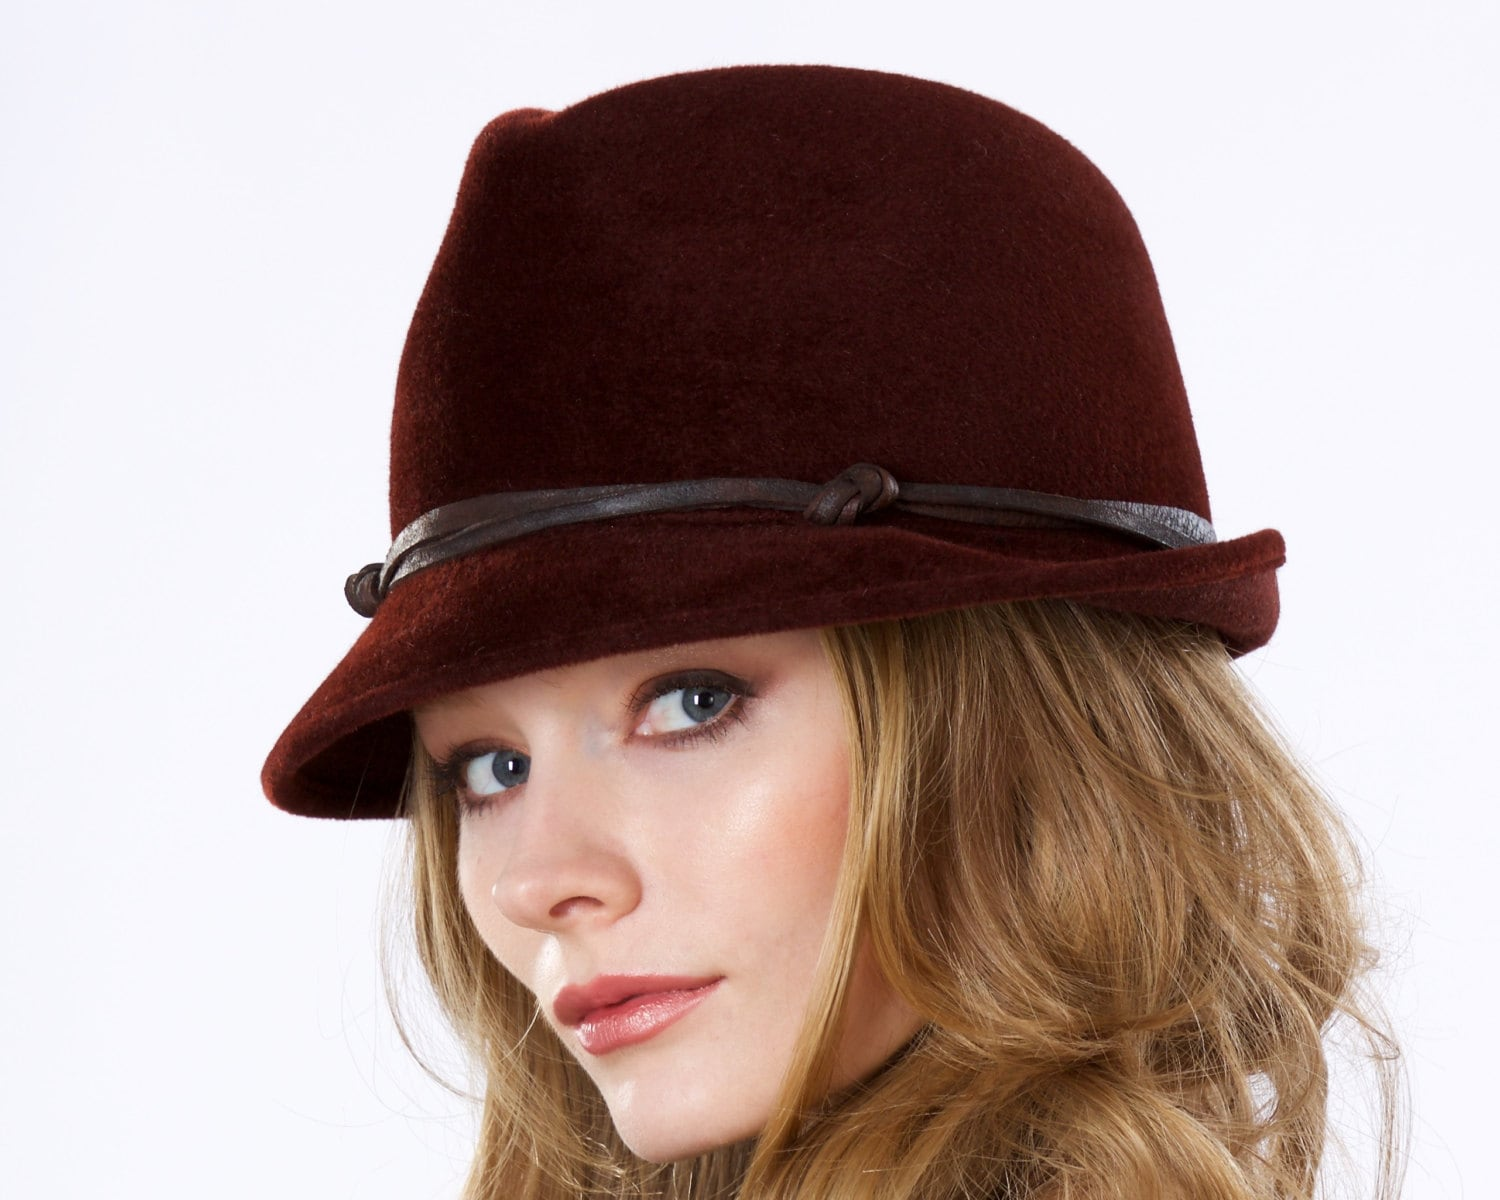 These hats, made just for the warmth of winter, will keep you warm, yet stylish.